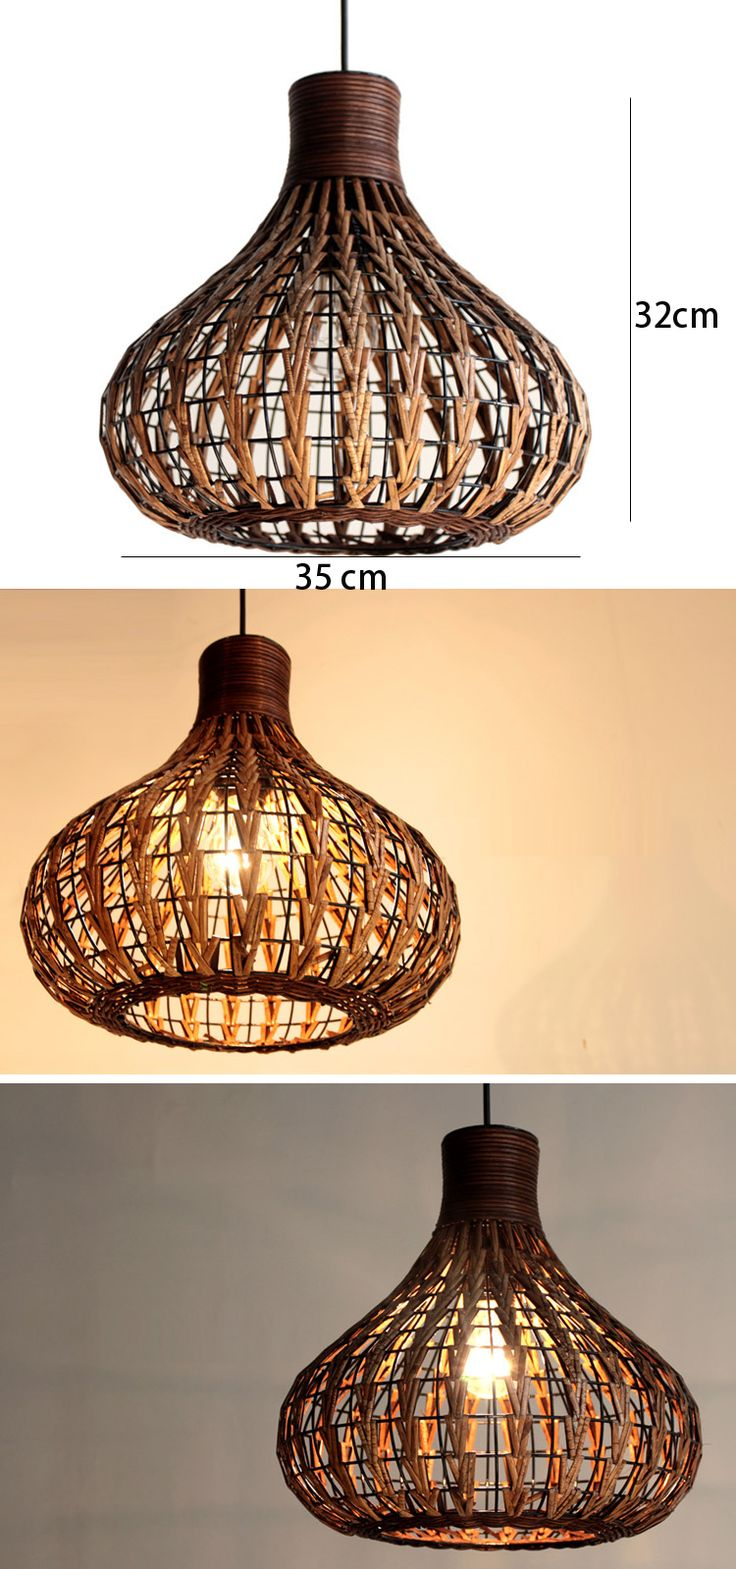 Wholesale 14 Handmade Modern Rattan Ceiling Pendant Lamp Living Lights Fixture Chandelier light, Free shipping, $115.98-124.31/Piece | DHgate